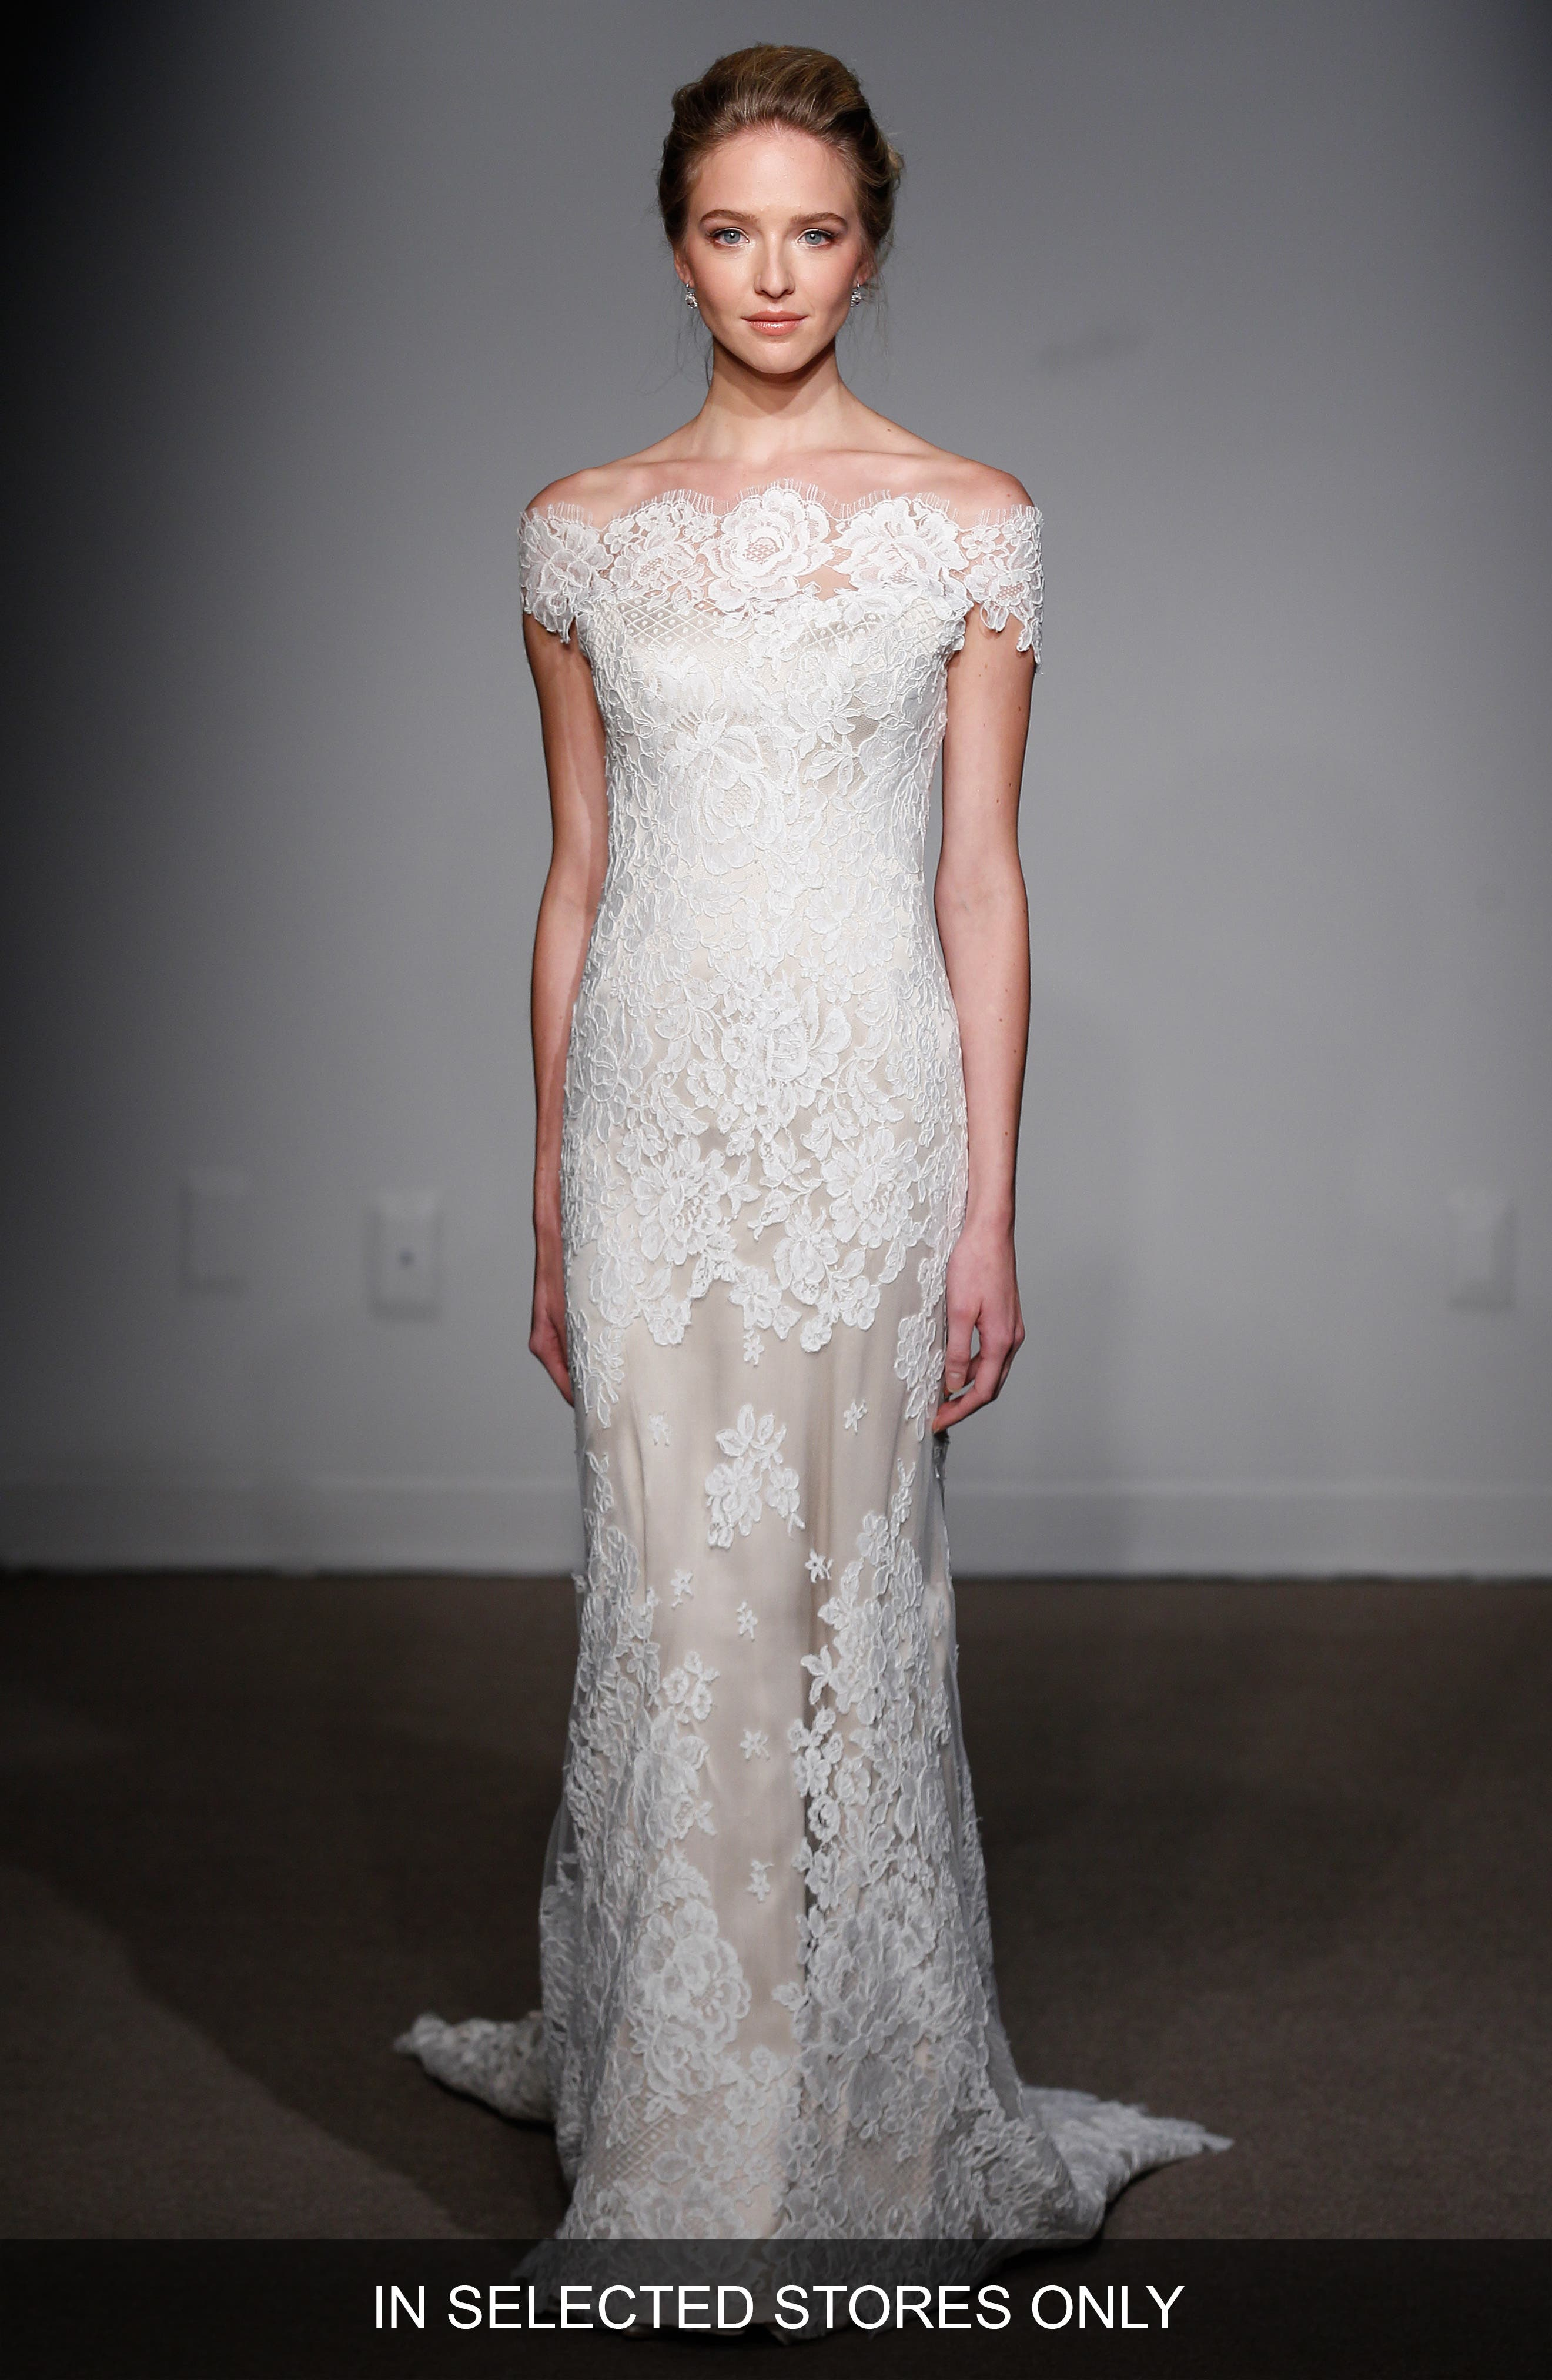 Main Image - Anna Maier Couture Gabrielle Off-the-Shoulder Corded Lace Gown (Regular & Plus Size)